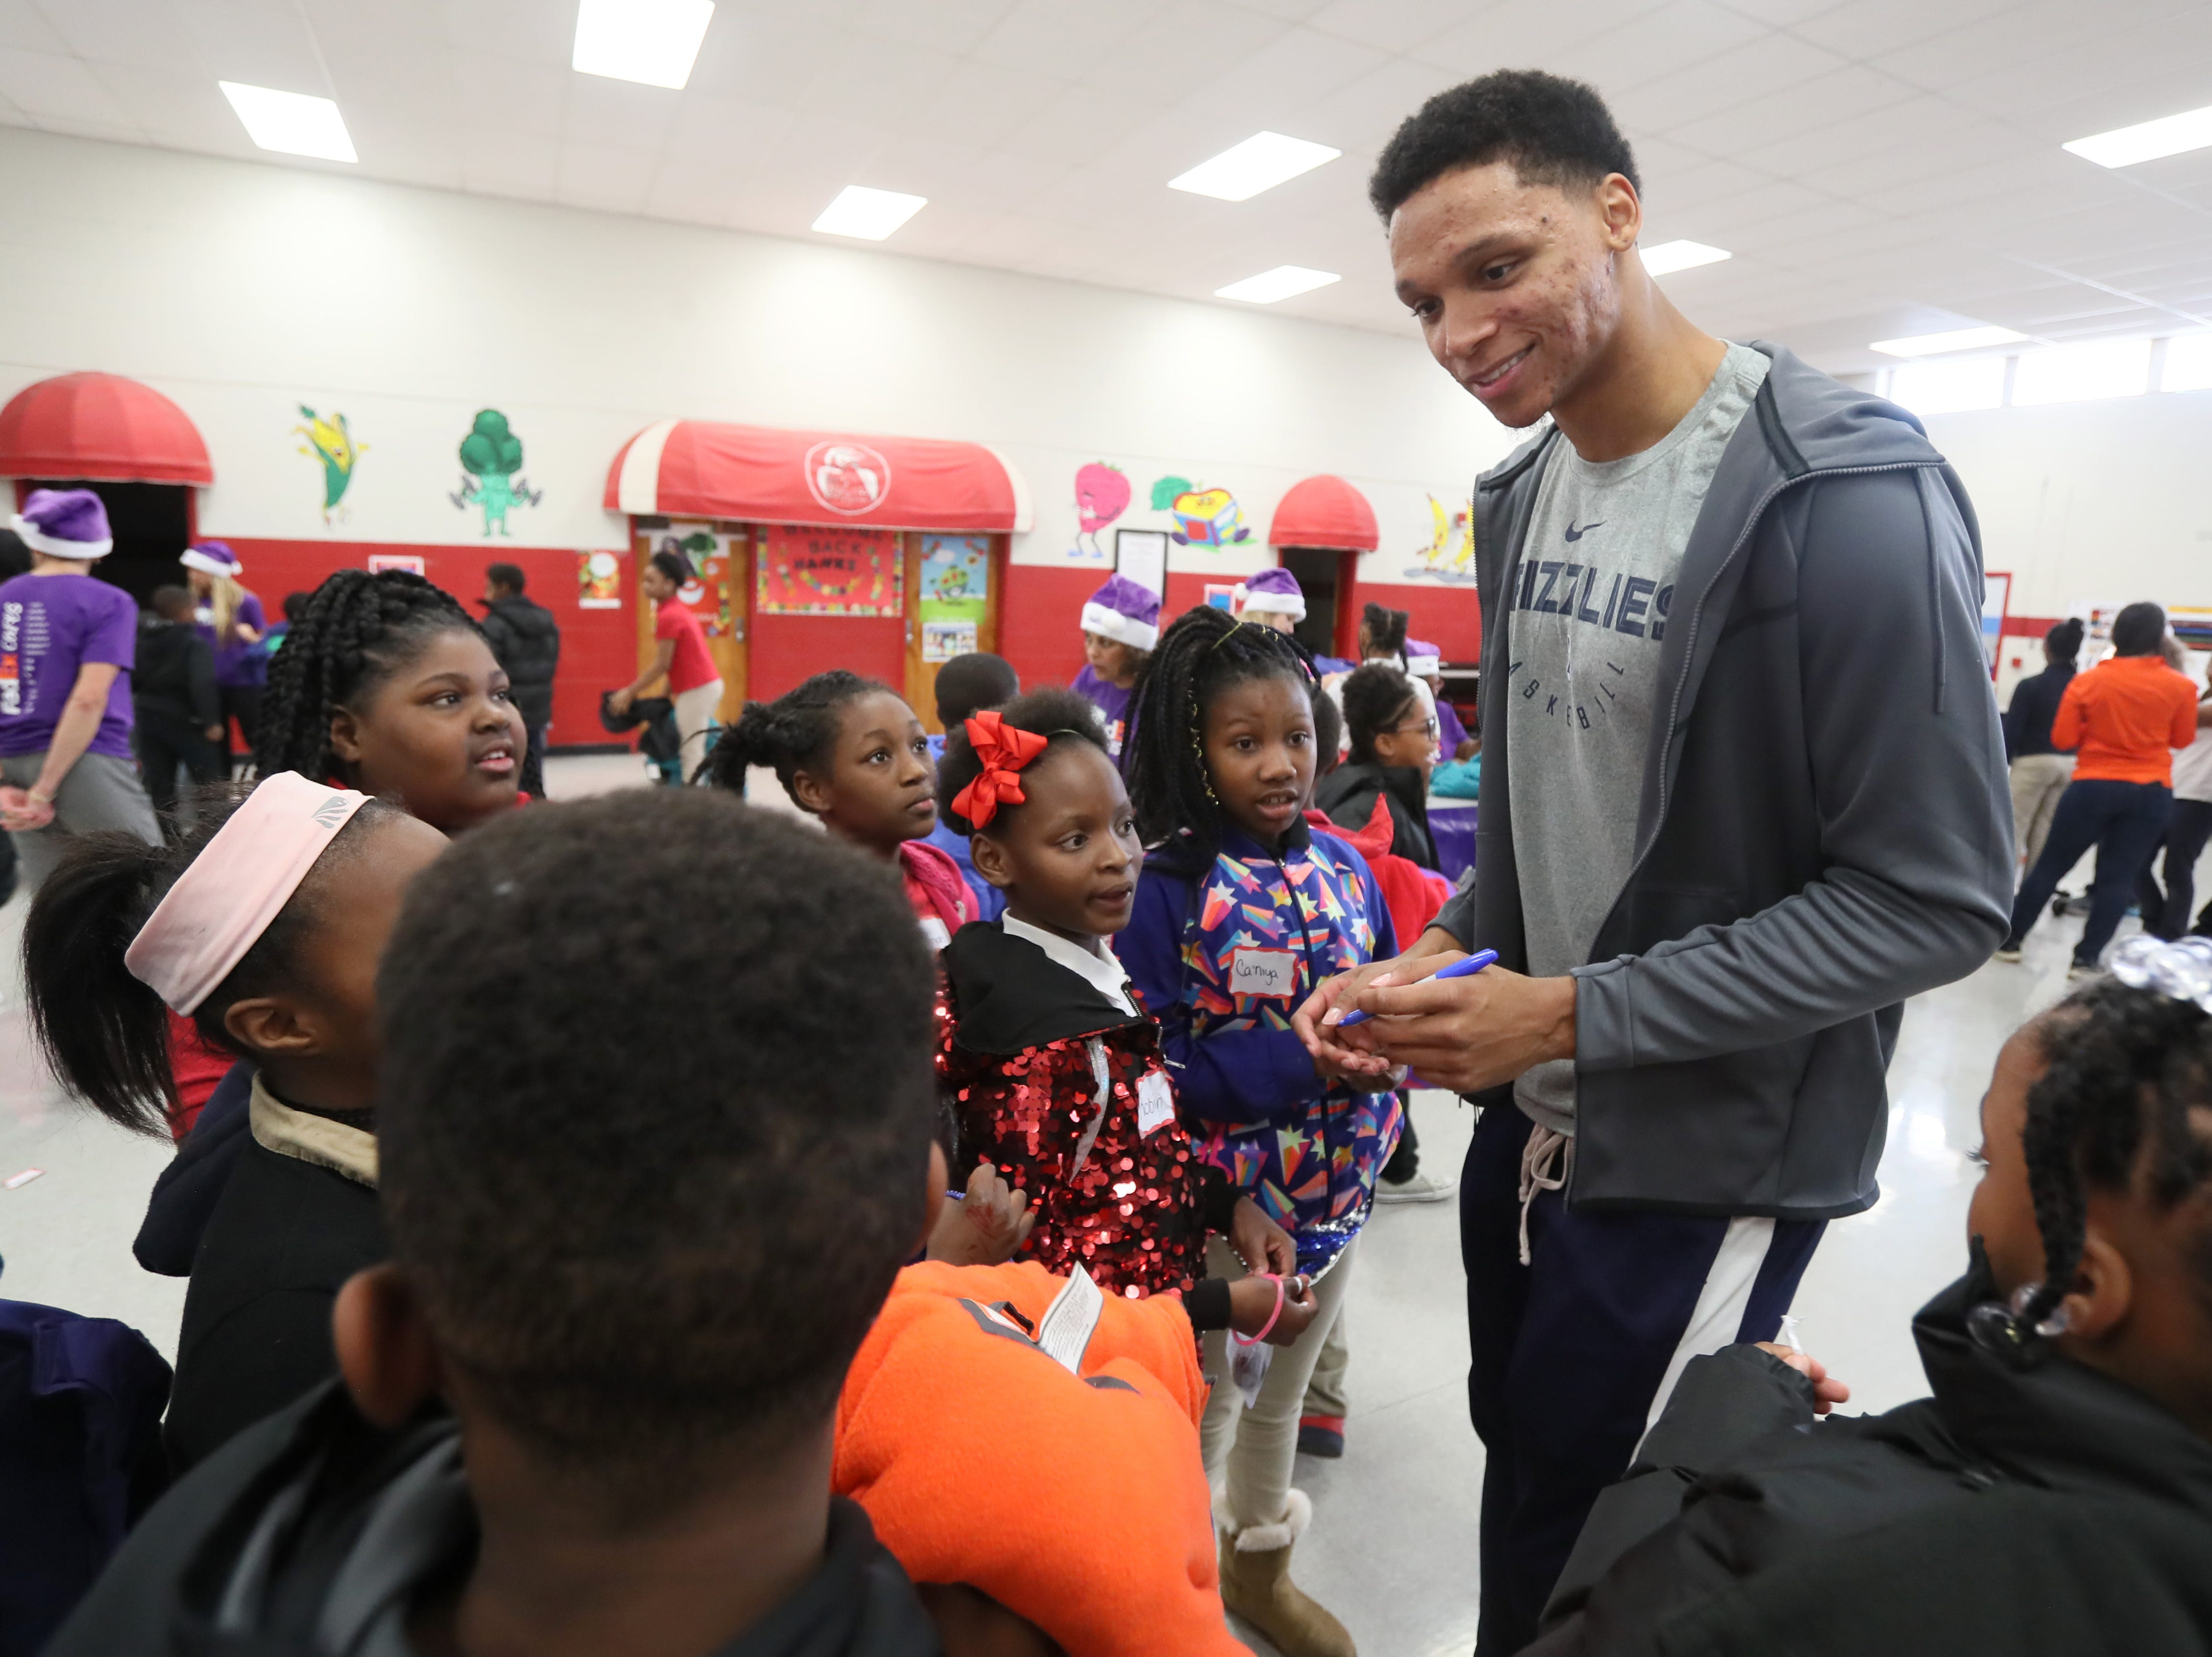 Memphis Grizzlies forward Ivan Rabb signs autographs for srudents as his team joins FedEx and Operation Warm to help surprise children with new coats at Hawkins Mill Elementary School on Thursday, Nov. 8, 2018.